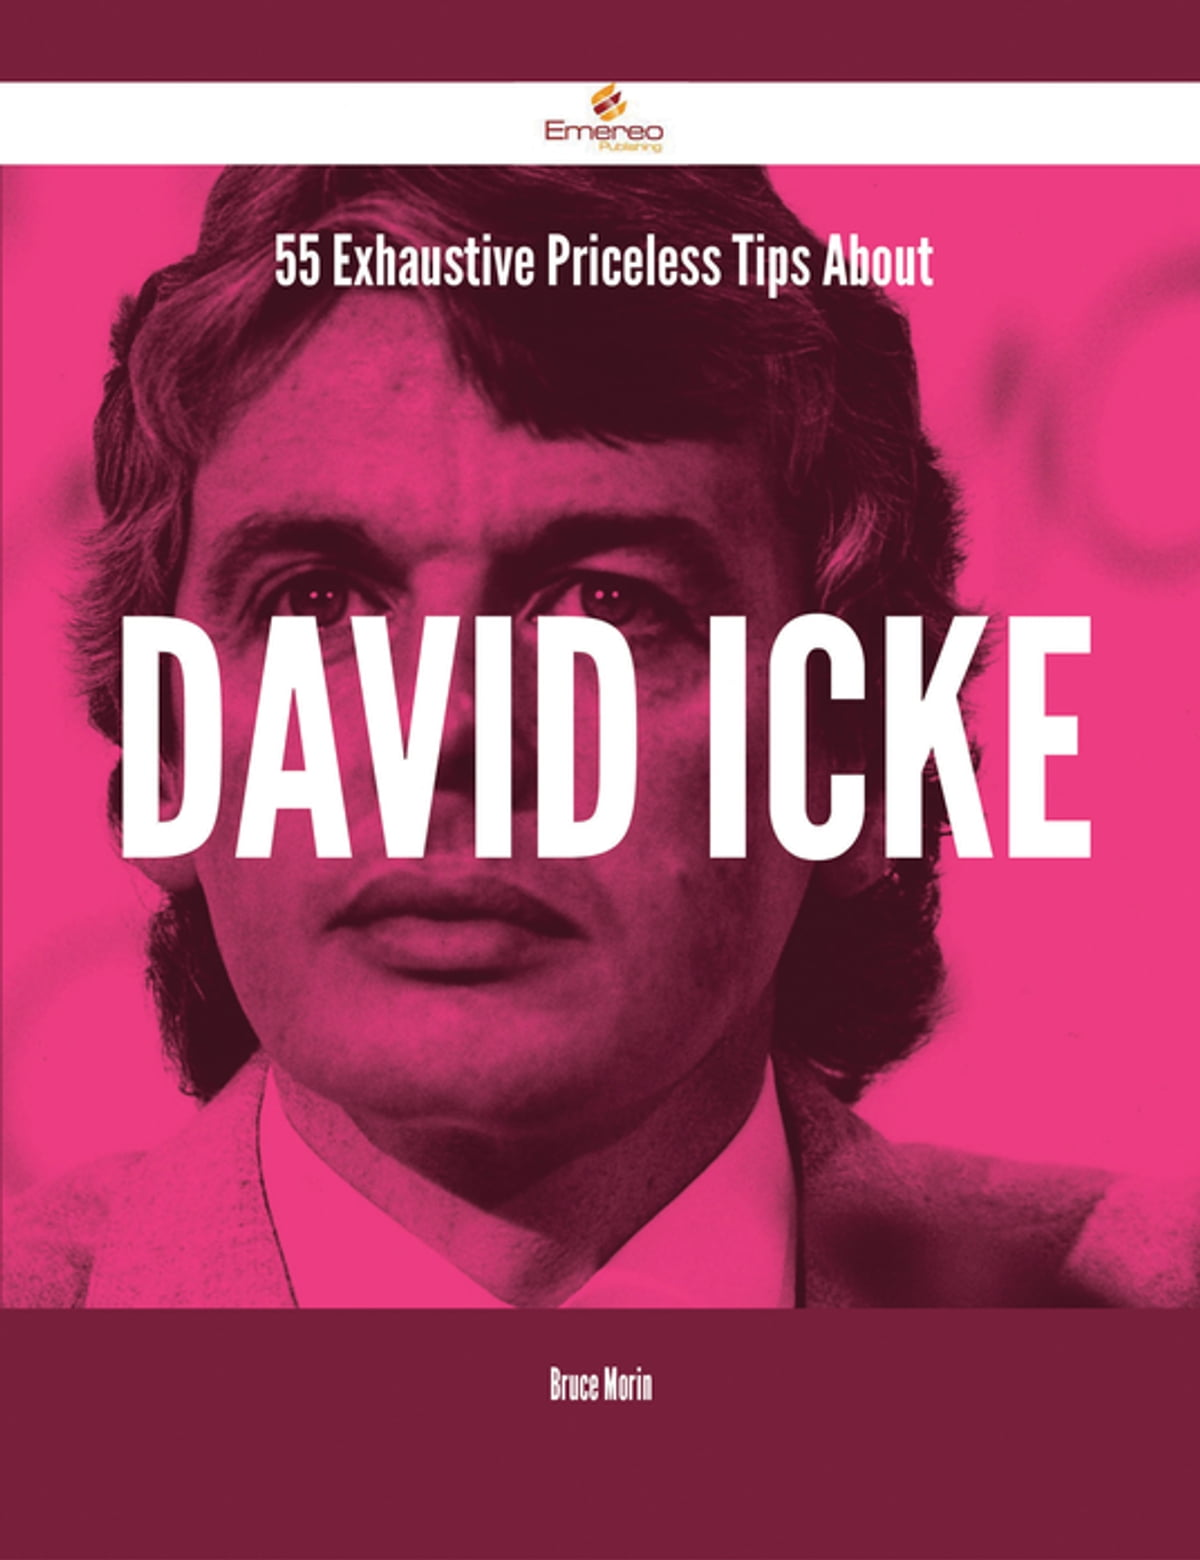 55 exhaustive priceless tips about david icke ebook by bruce morin 55 exhaustive priceless tips about david icke ebook by bruce morin 9781488832956 rakuten kobo fandeluxe Choice Image